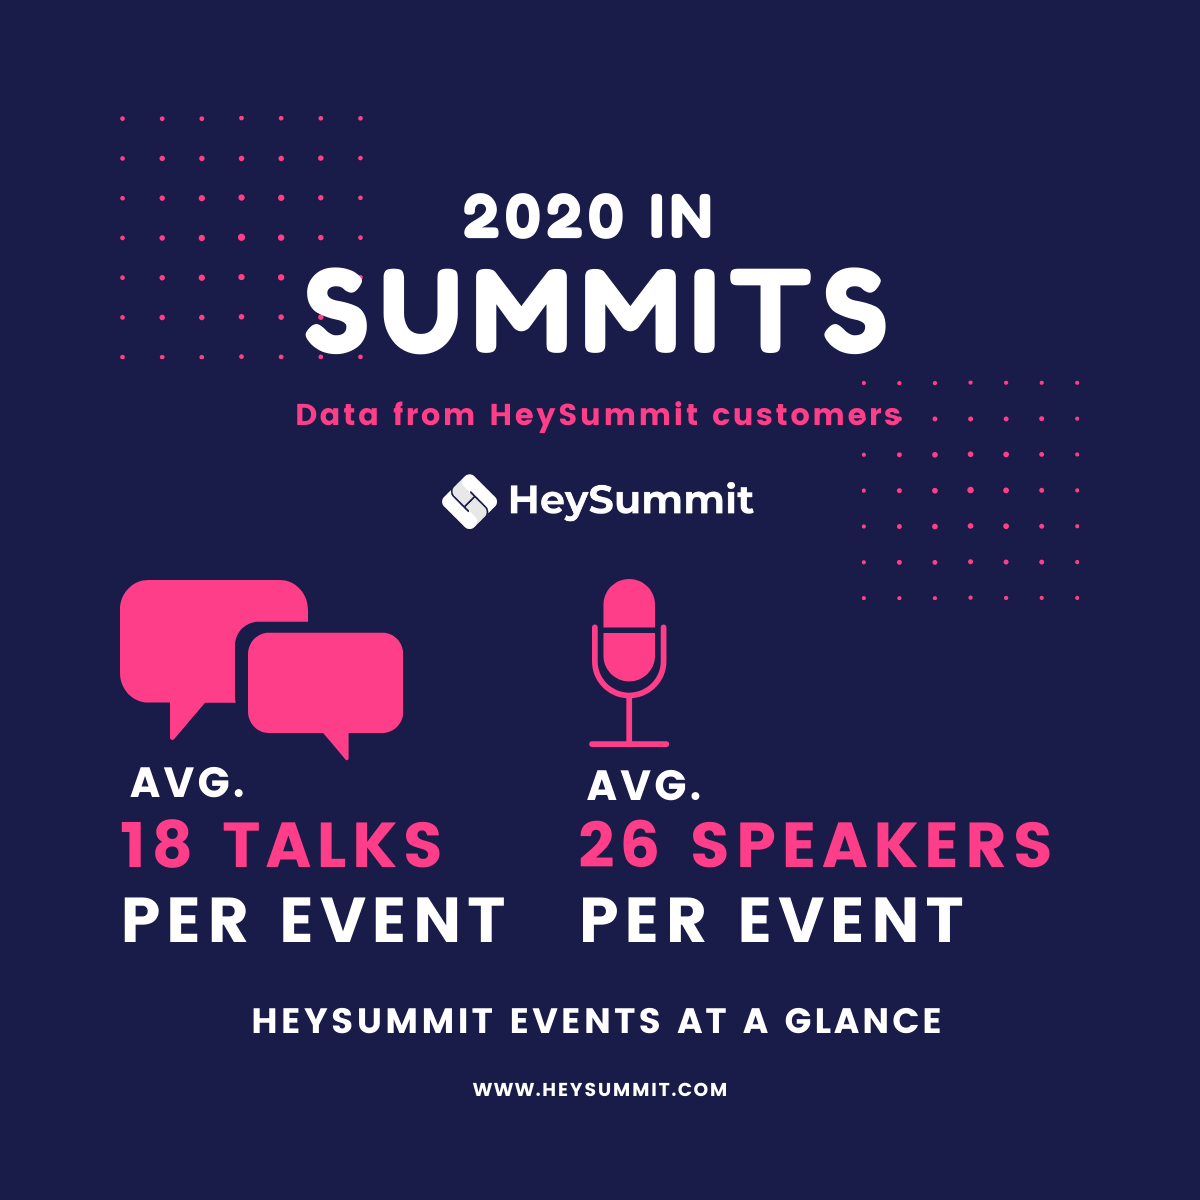 Graphic showing 18 talks per event and 26 speakers per event on average